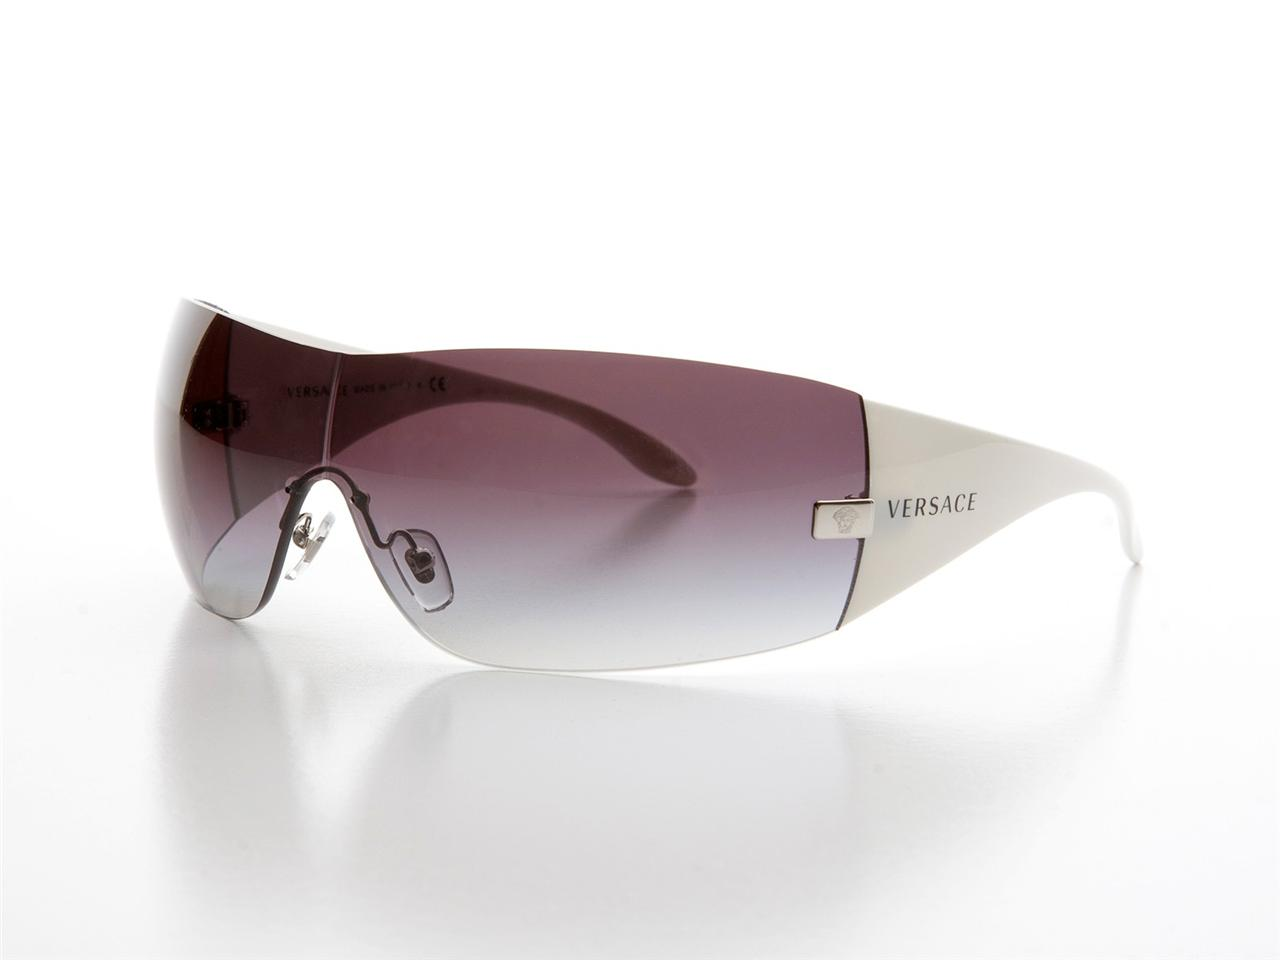 versace 2054 1000 8g 115 3 network uk